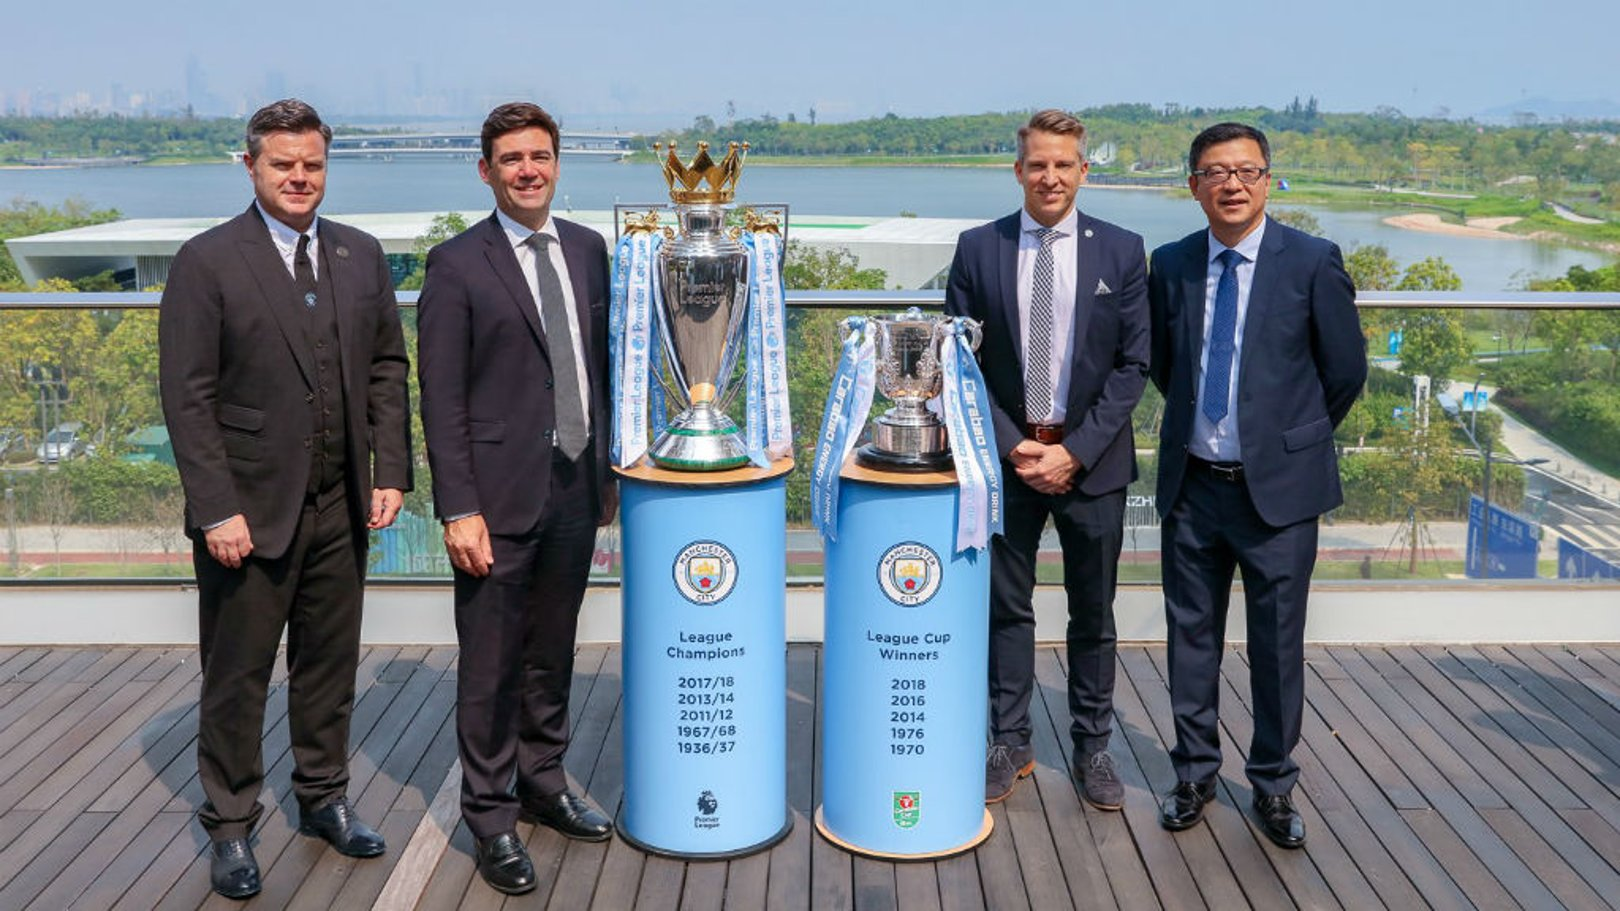 ndy Burnham, Mayor of Greater Manchester (second left) is pictured in Shenzhen with City Football Group executives and the Premier League and Carabao Cup trophies that were won by Manchester City last season.